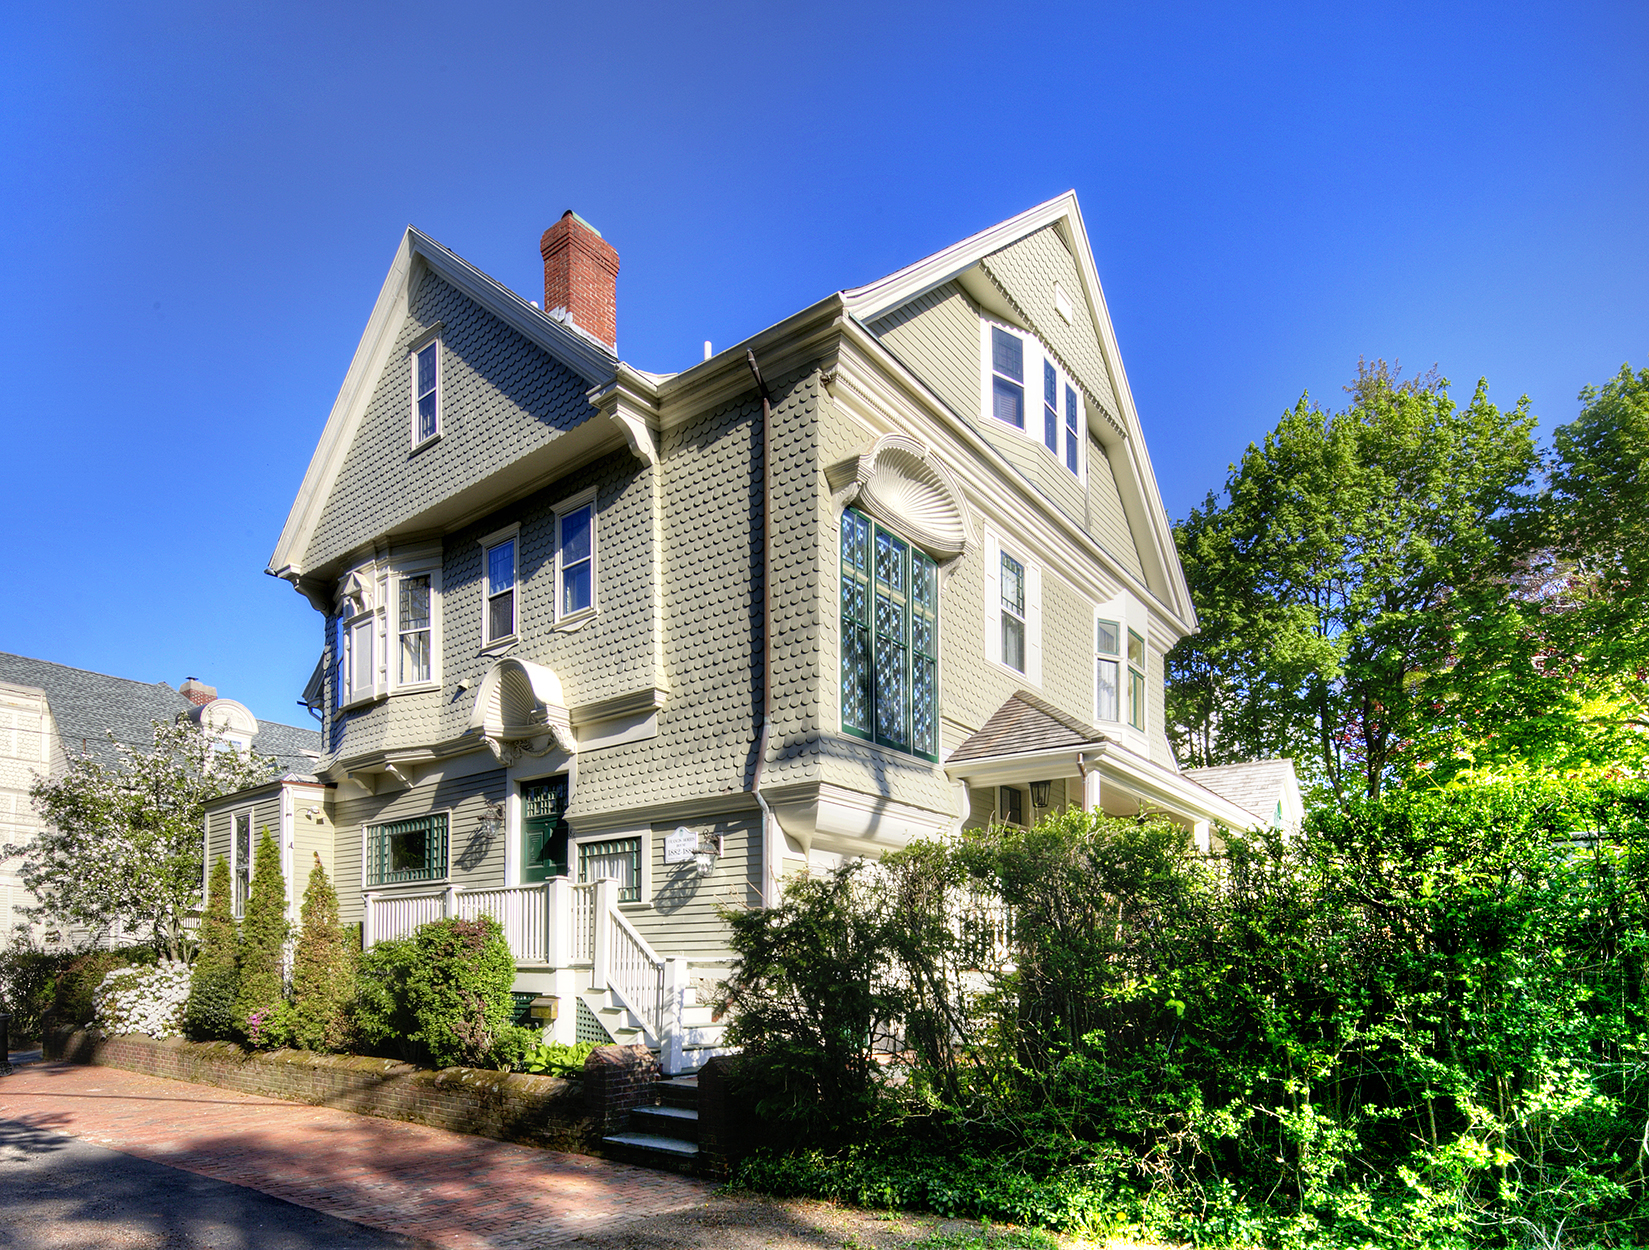 Single Family Home for Sale at The Francis Morris House 86 Rhode Island Avenue Newport, Rhode Island 02840 United States